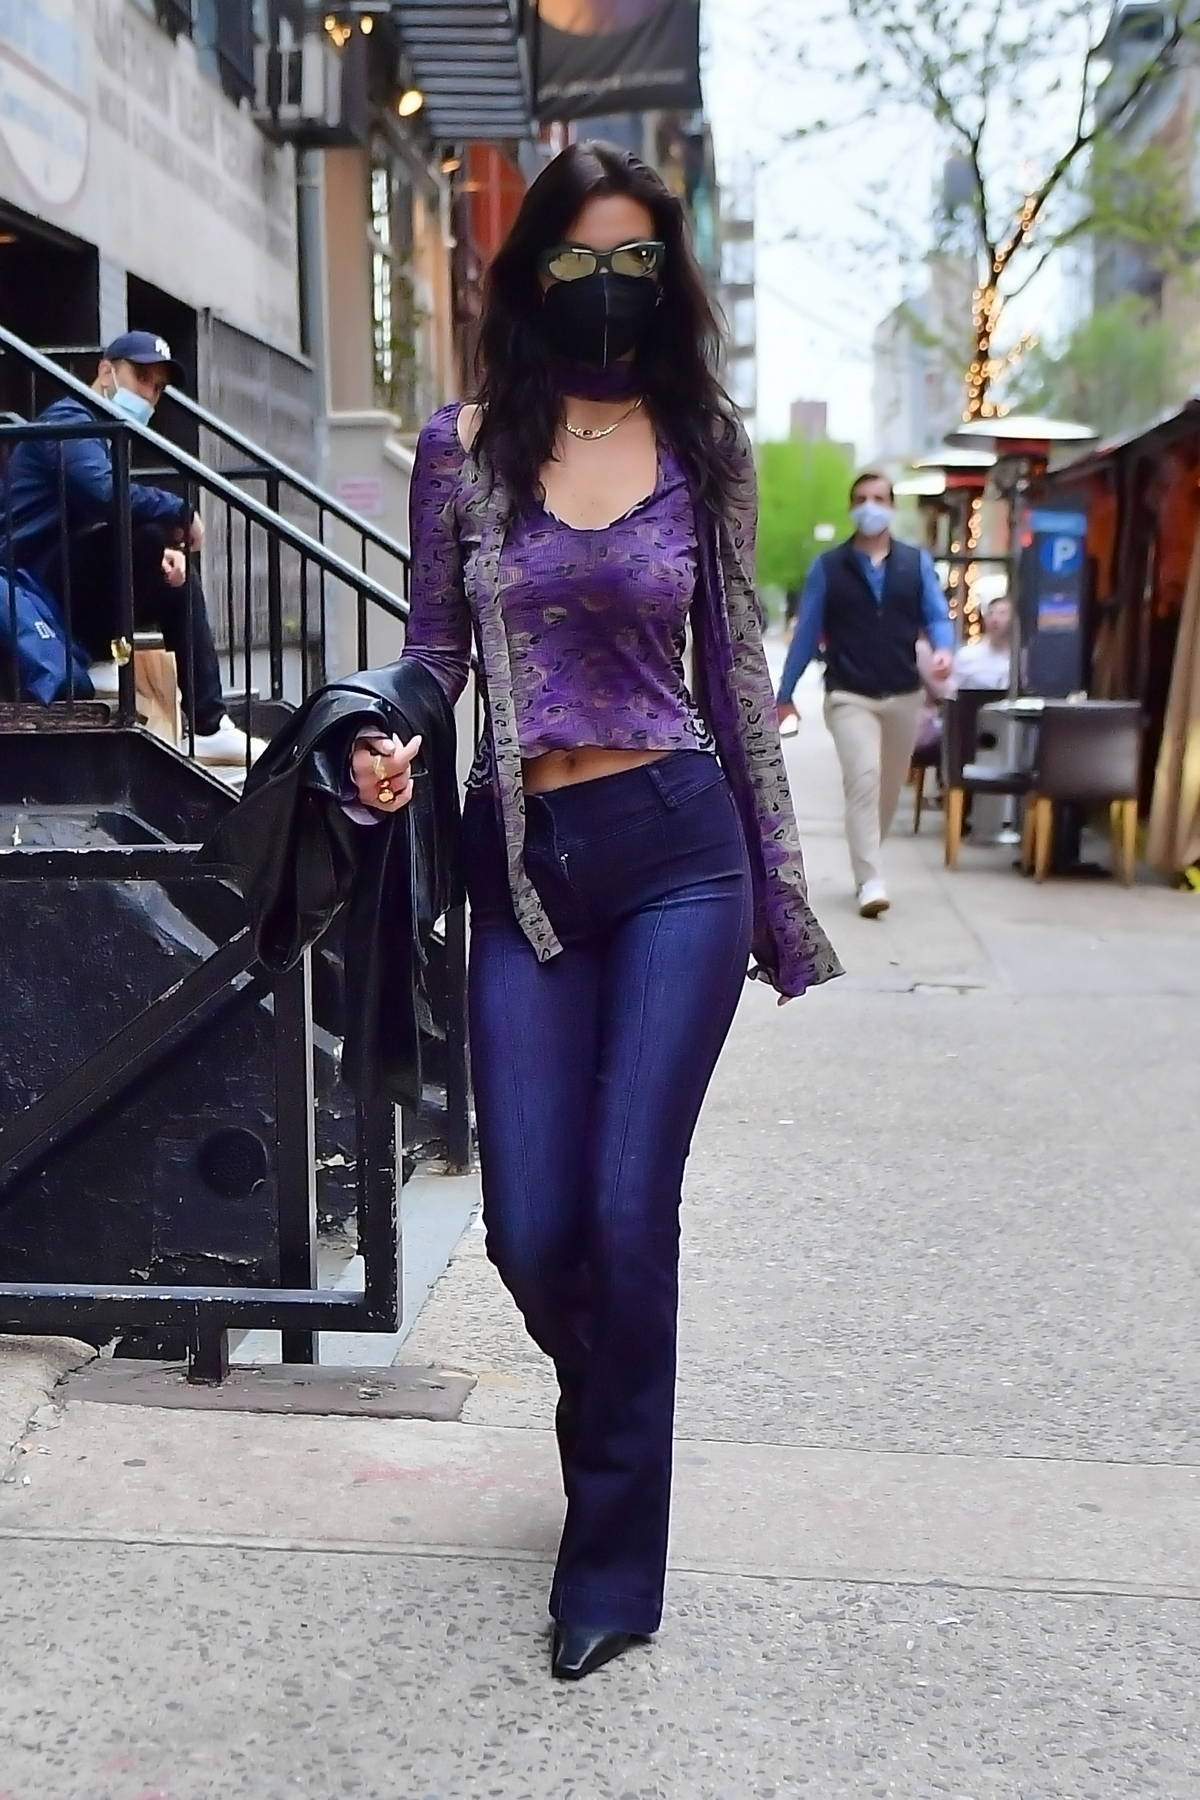 Bella Hadid looks striking in purple leaving sister Gigi's apartment headed to Zero Bond in New York City